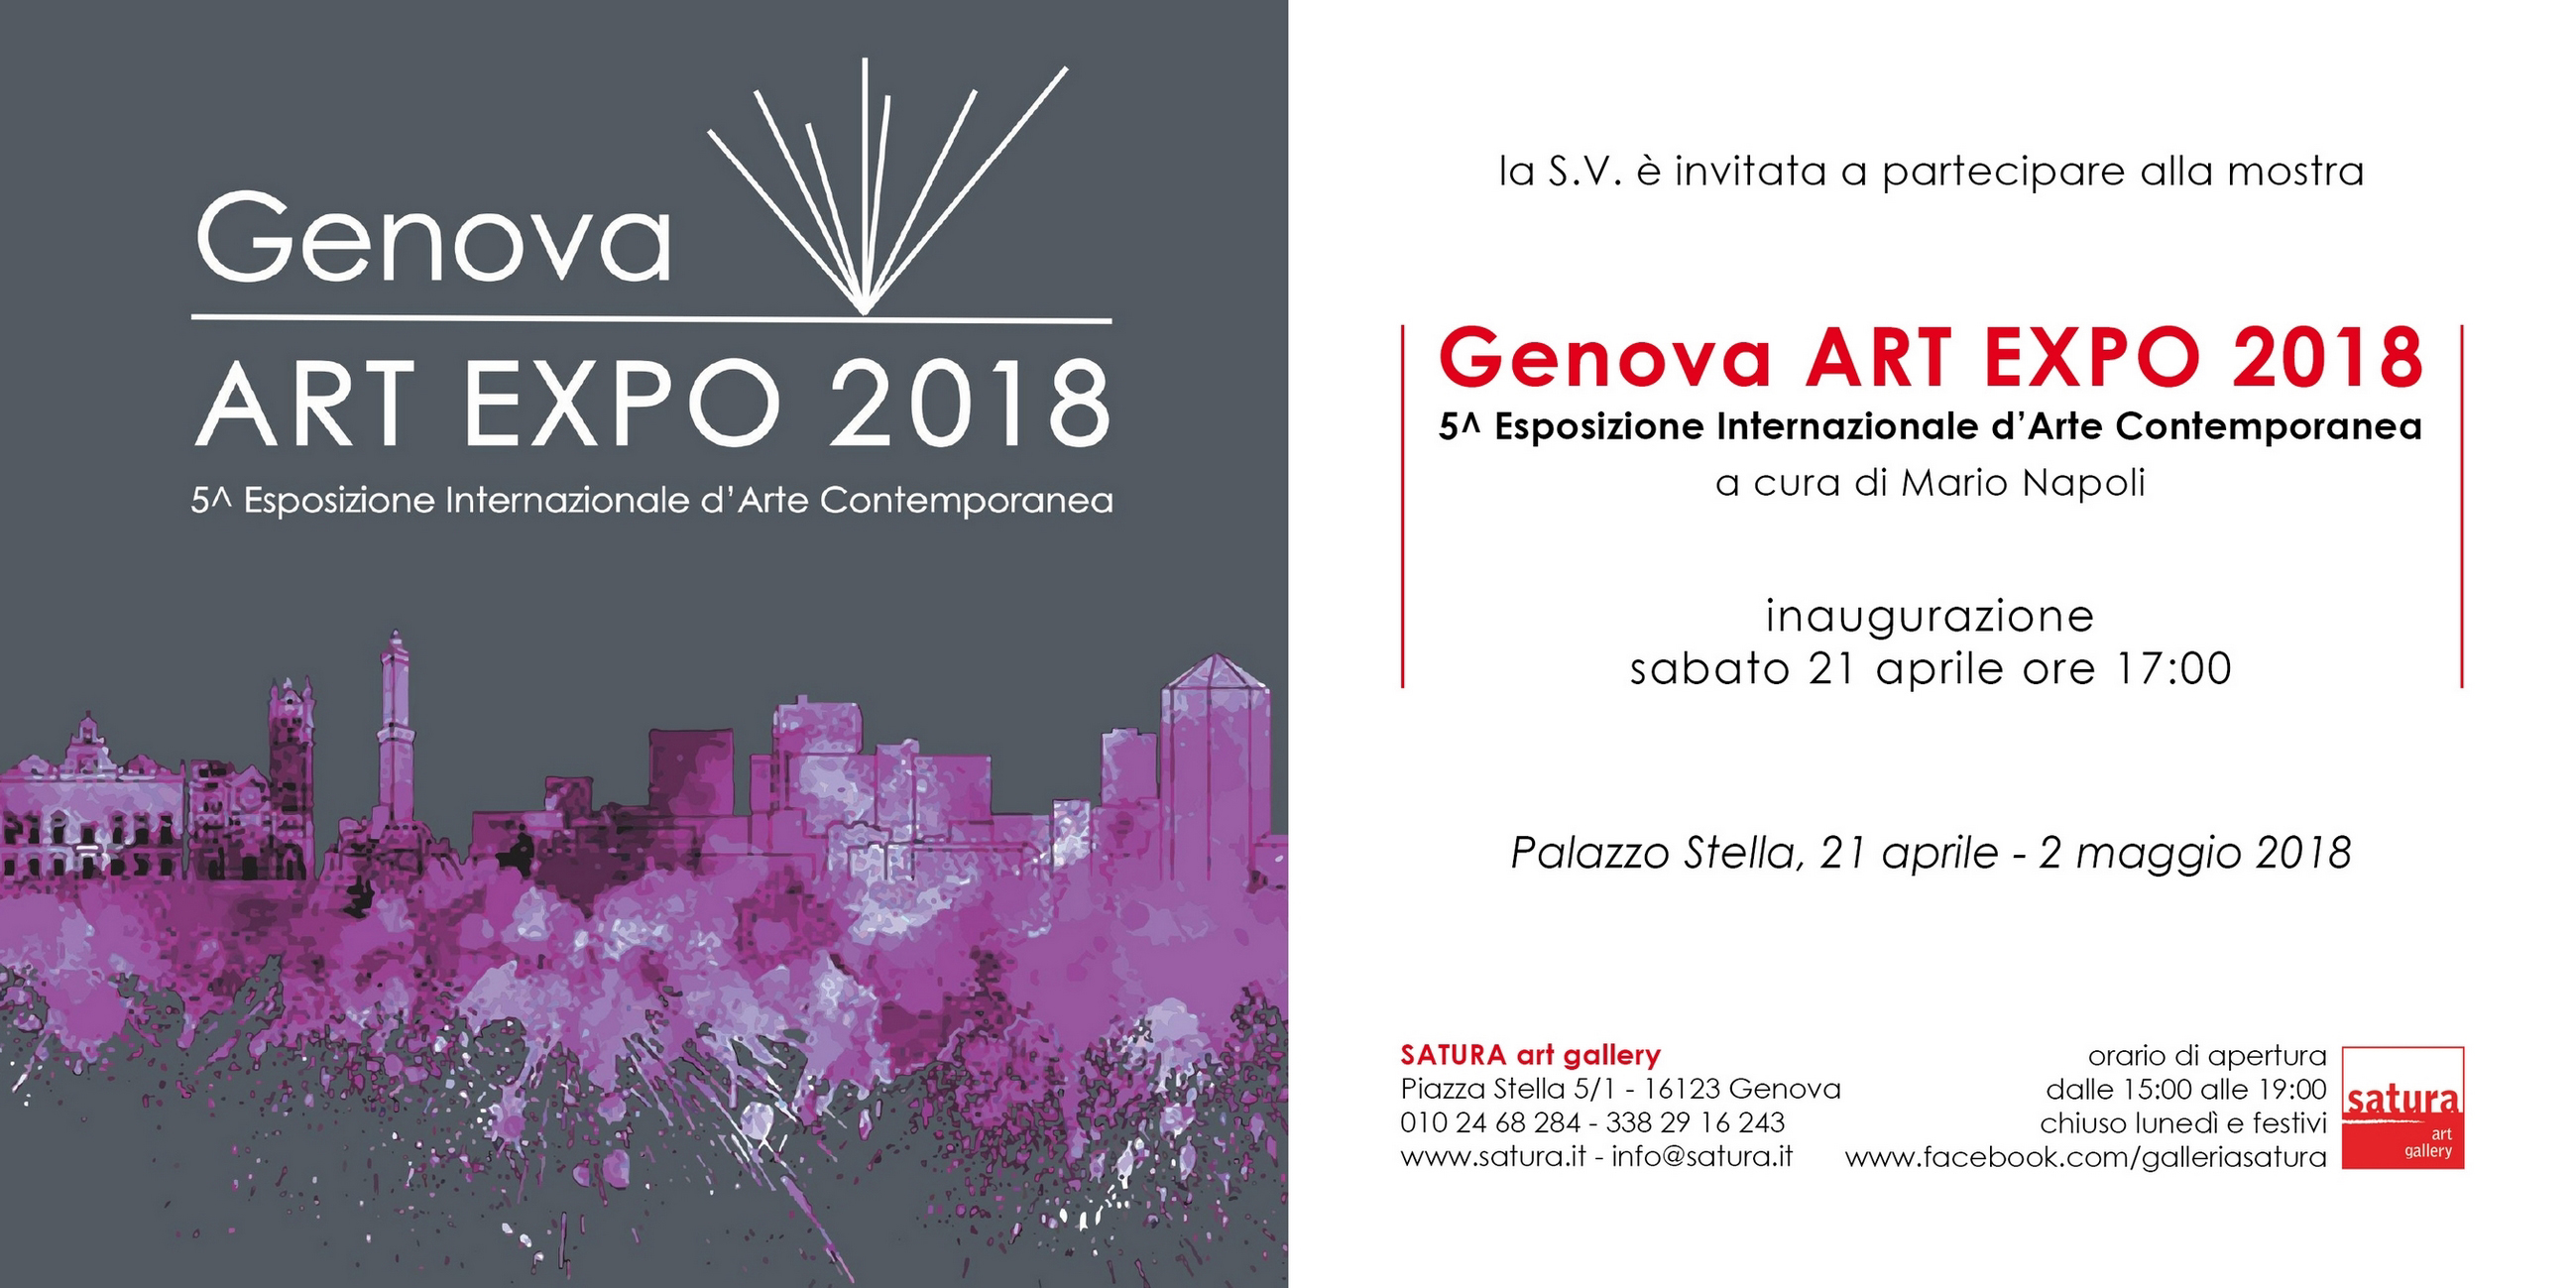 EXPO 2018 invito digitale copia